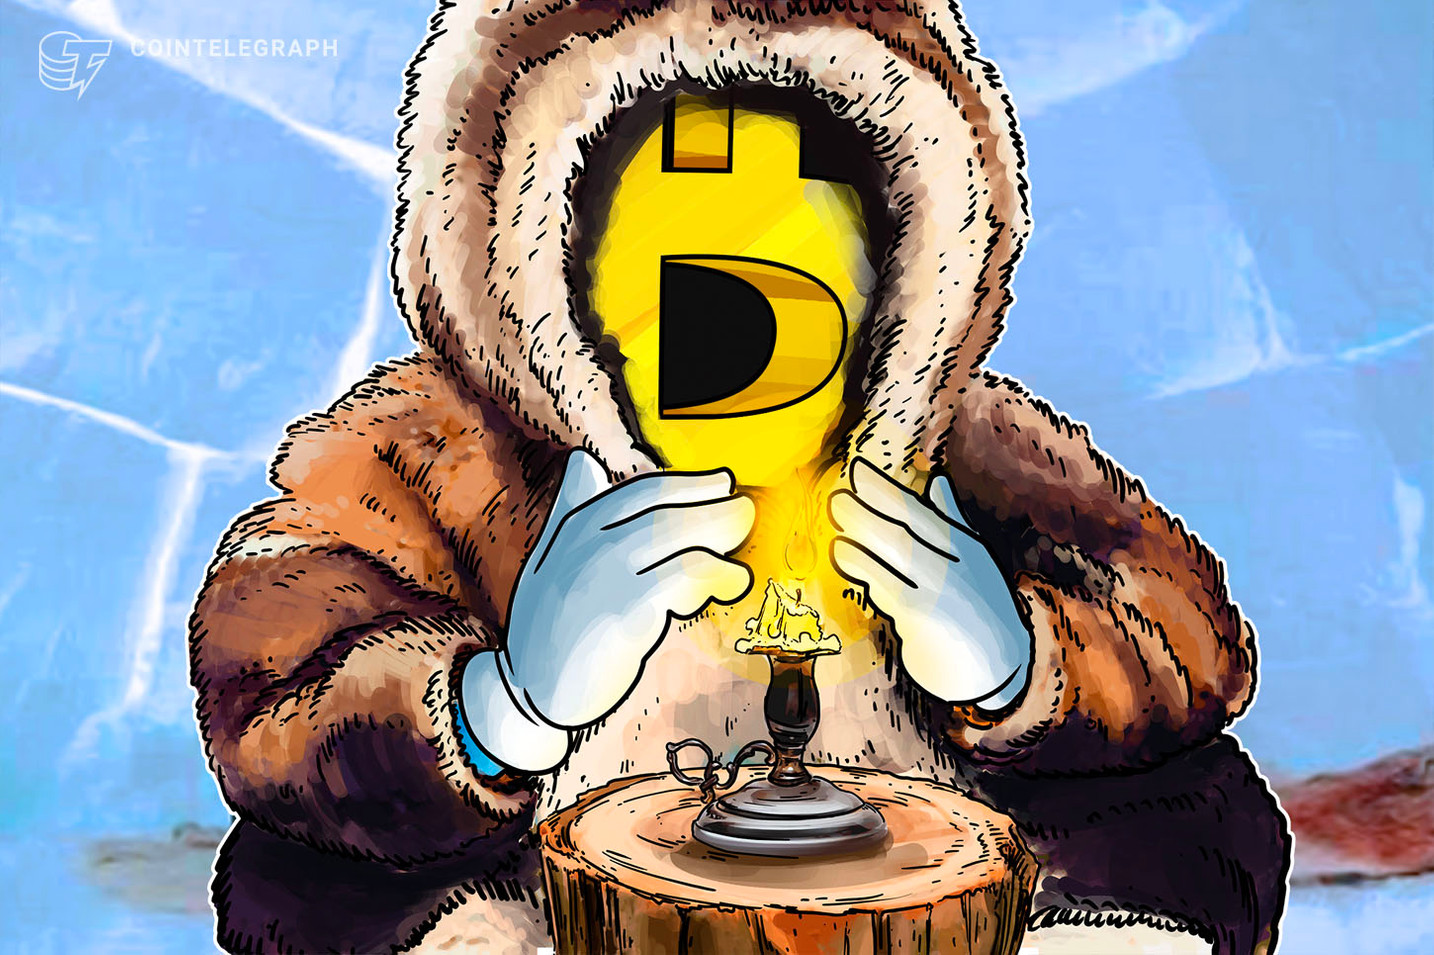 Darknet market link provider claims its Bitcoin donors' accounts were frozen